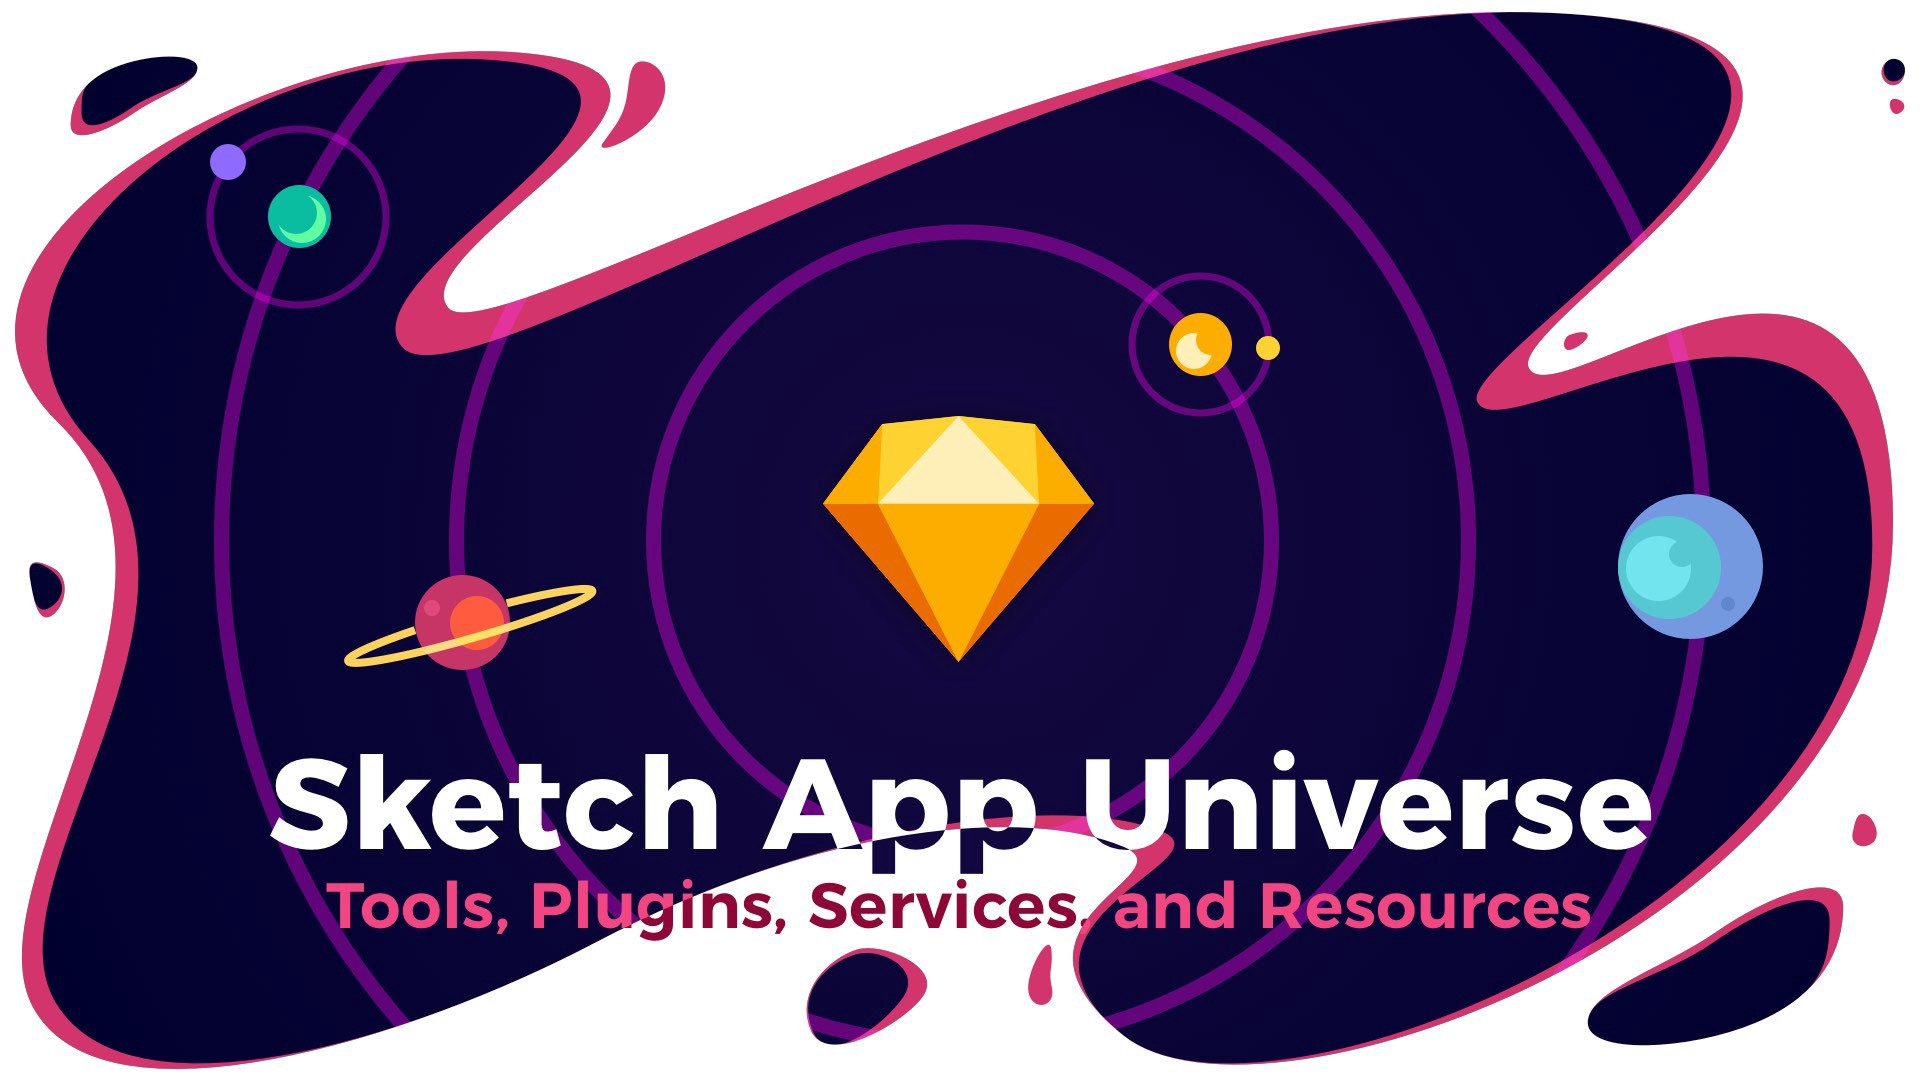 Sketch App Universe — Tools, Plugins, Services, and Resources that